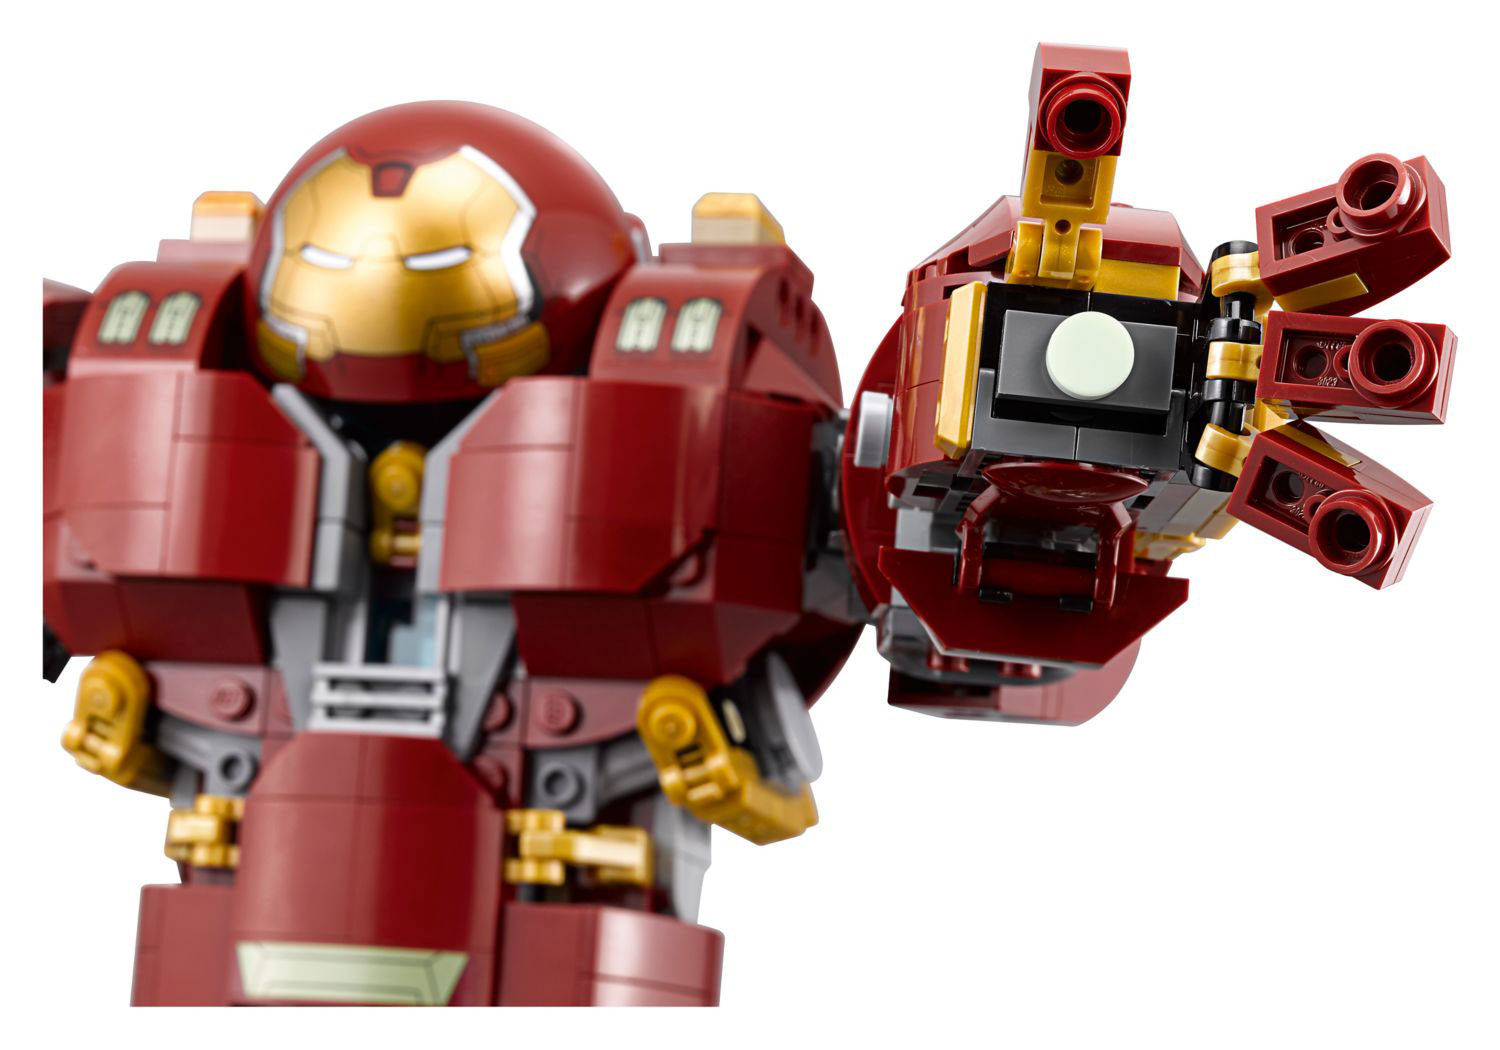 LEGO Marvel Comics Hulkbuster Ultron Edition 76105 Set